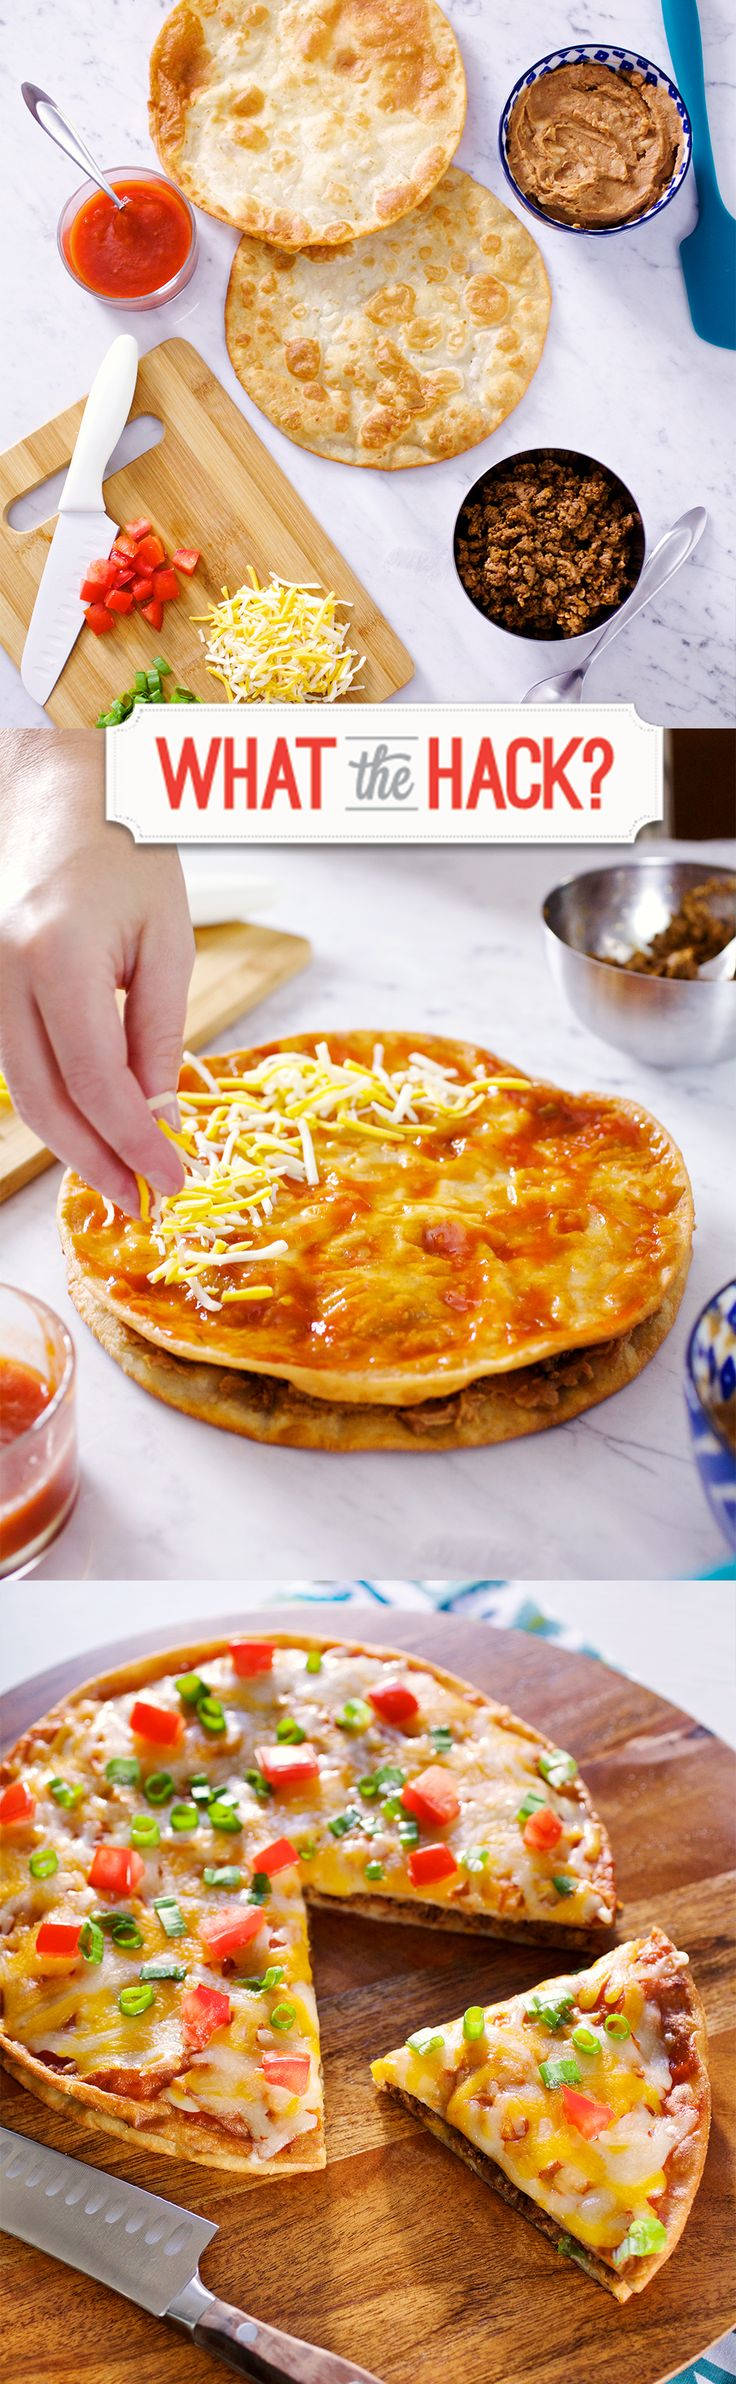 Make this #GlutenFree Mexican Pizza using Udi's tortillas! l #WhatTheHack